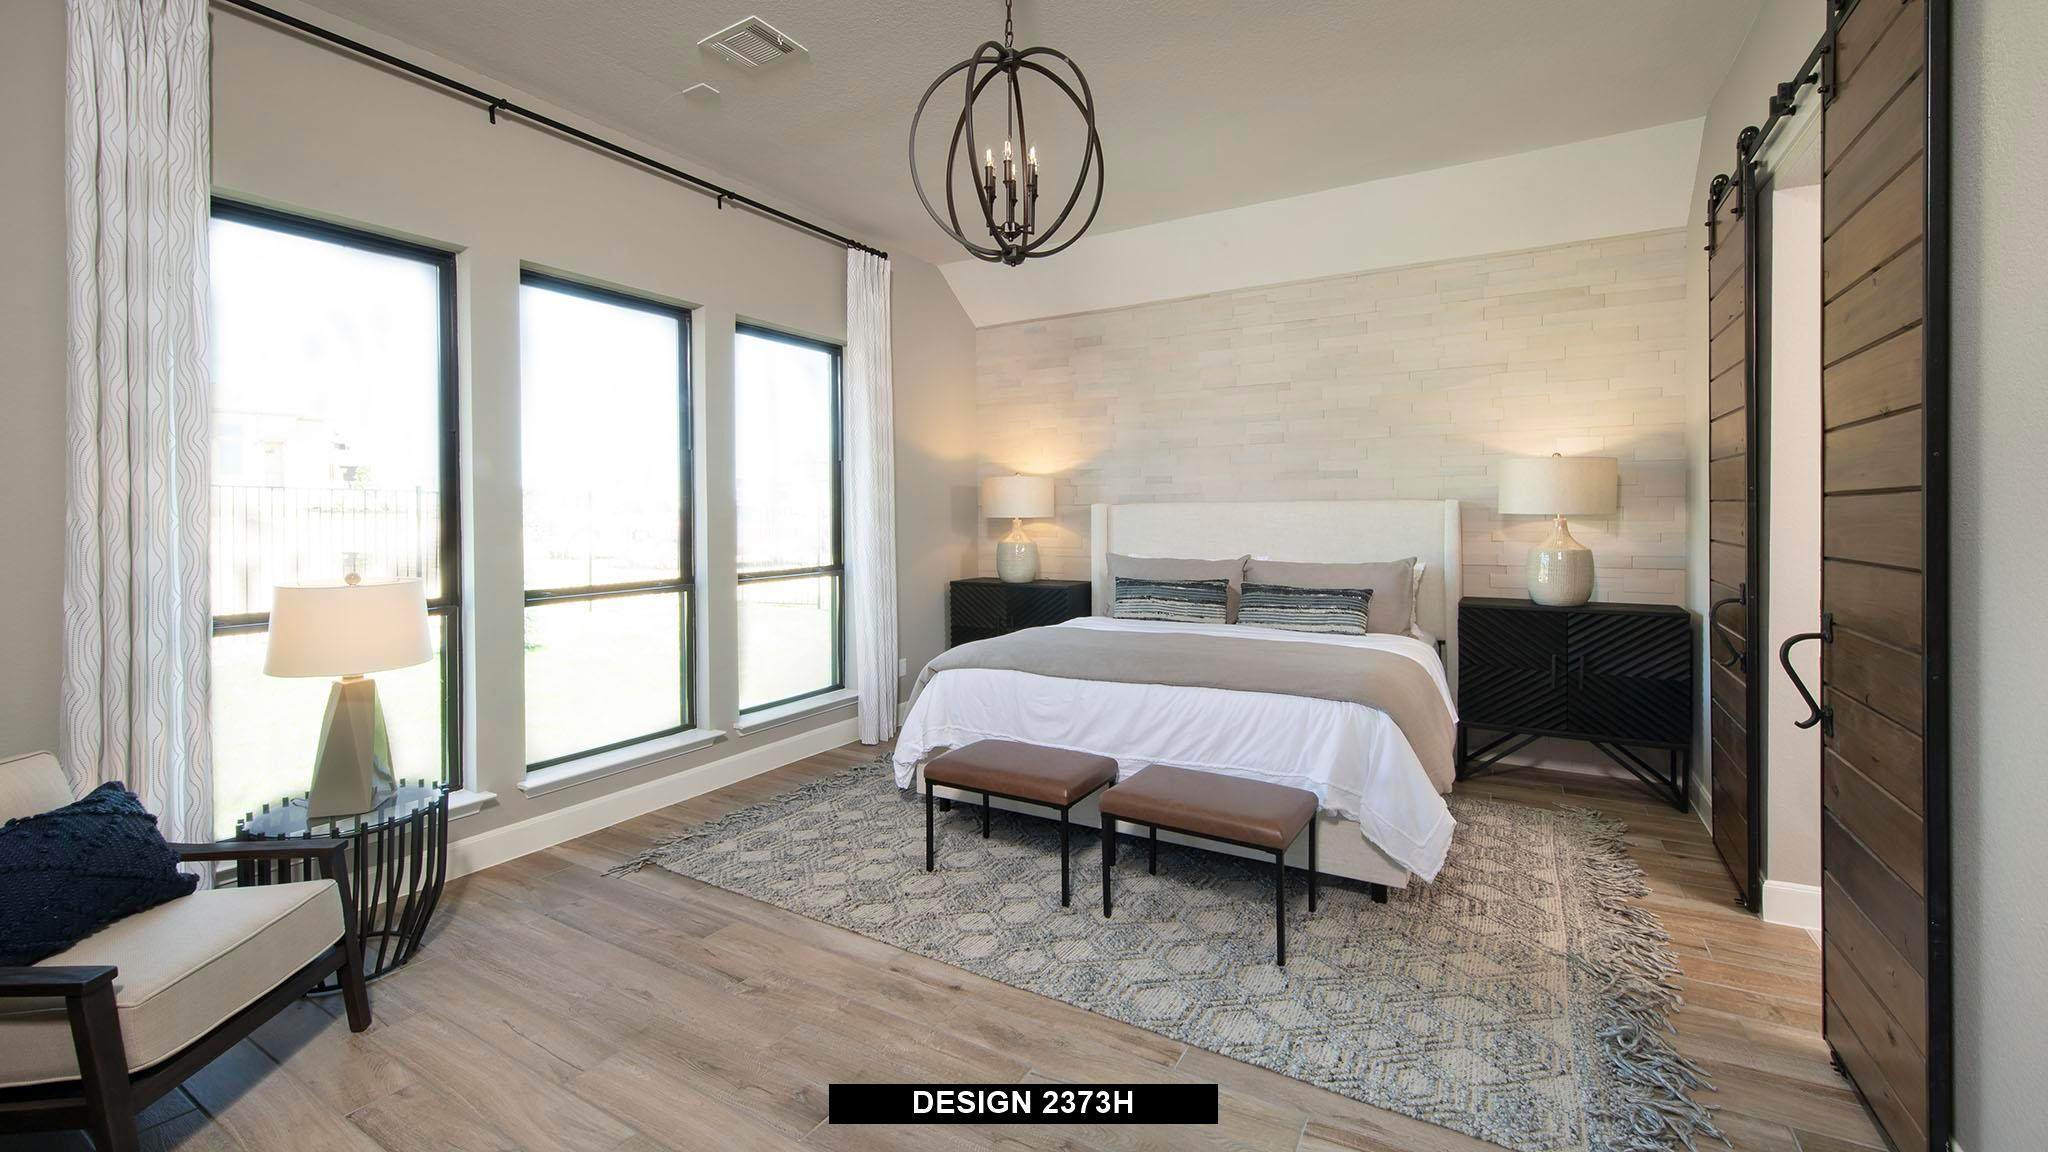 Bedroom featured in the 2373H By Perry Homes in Dallas, TX